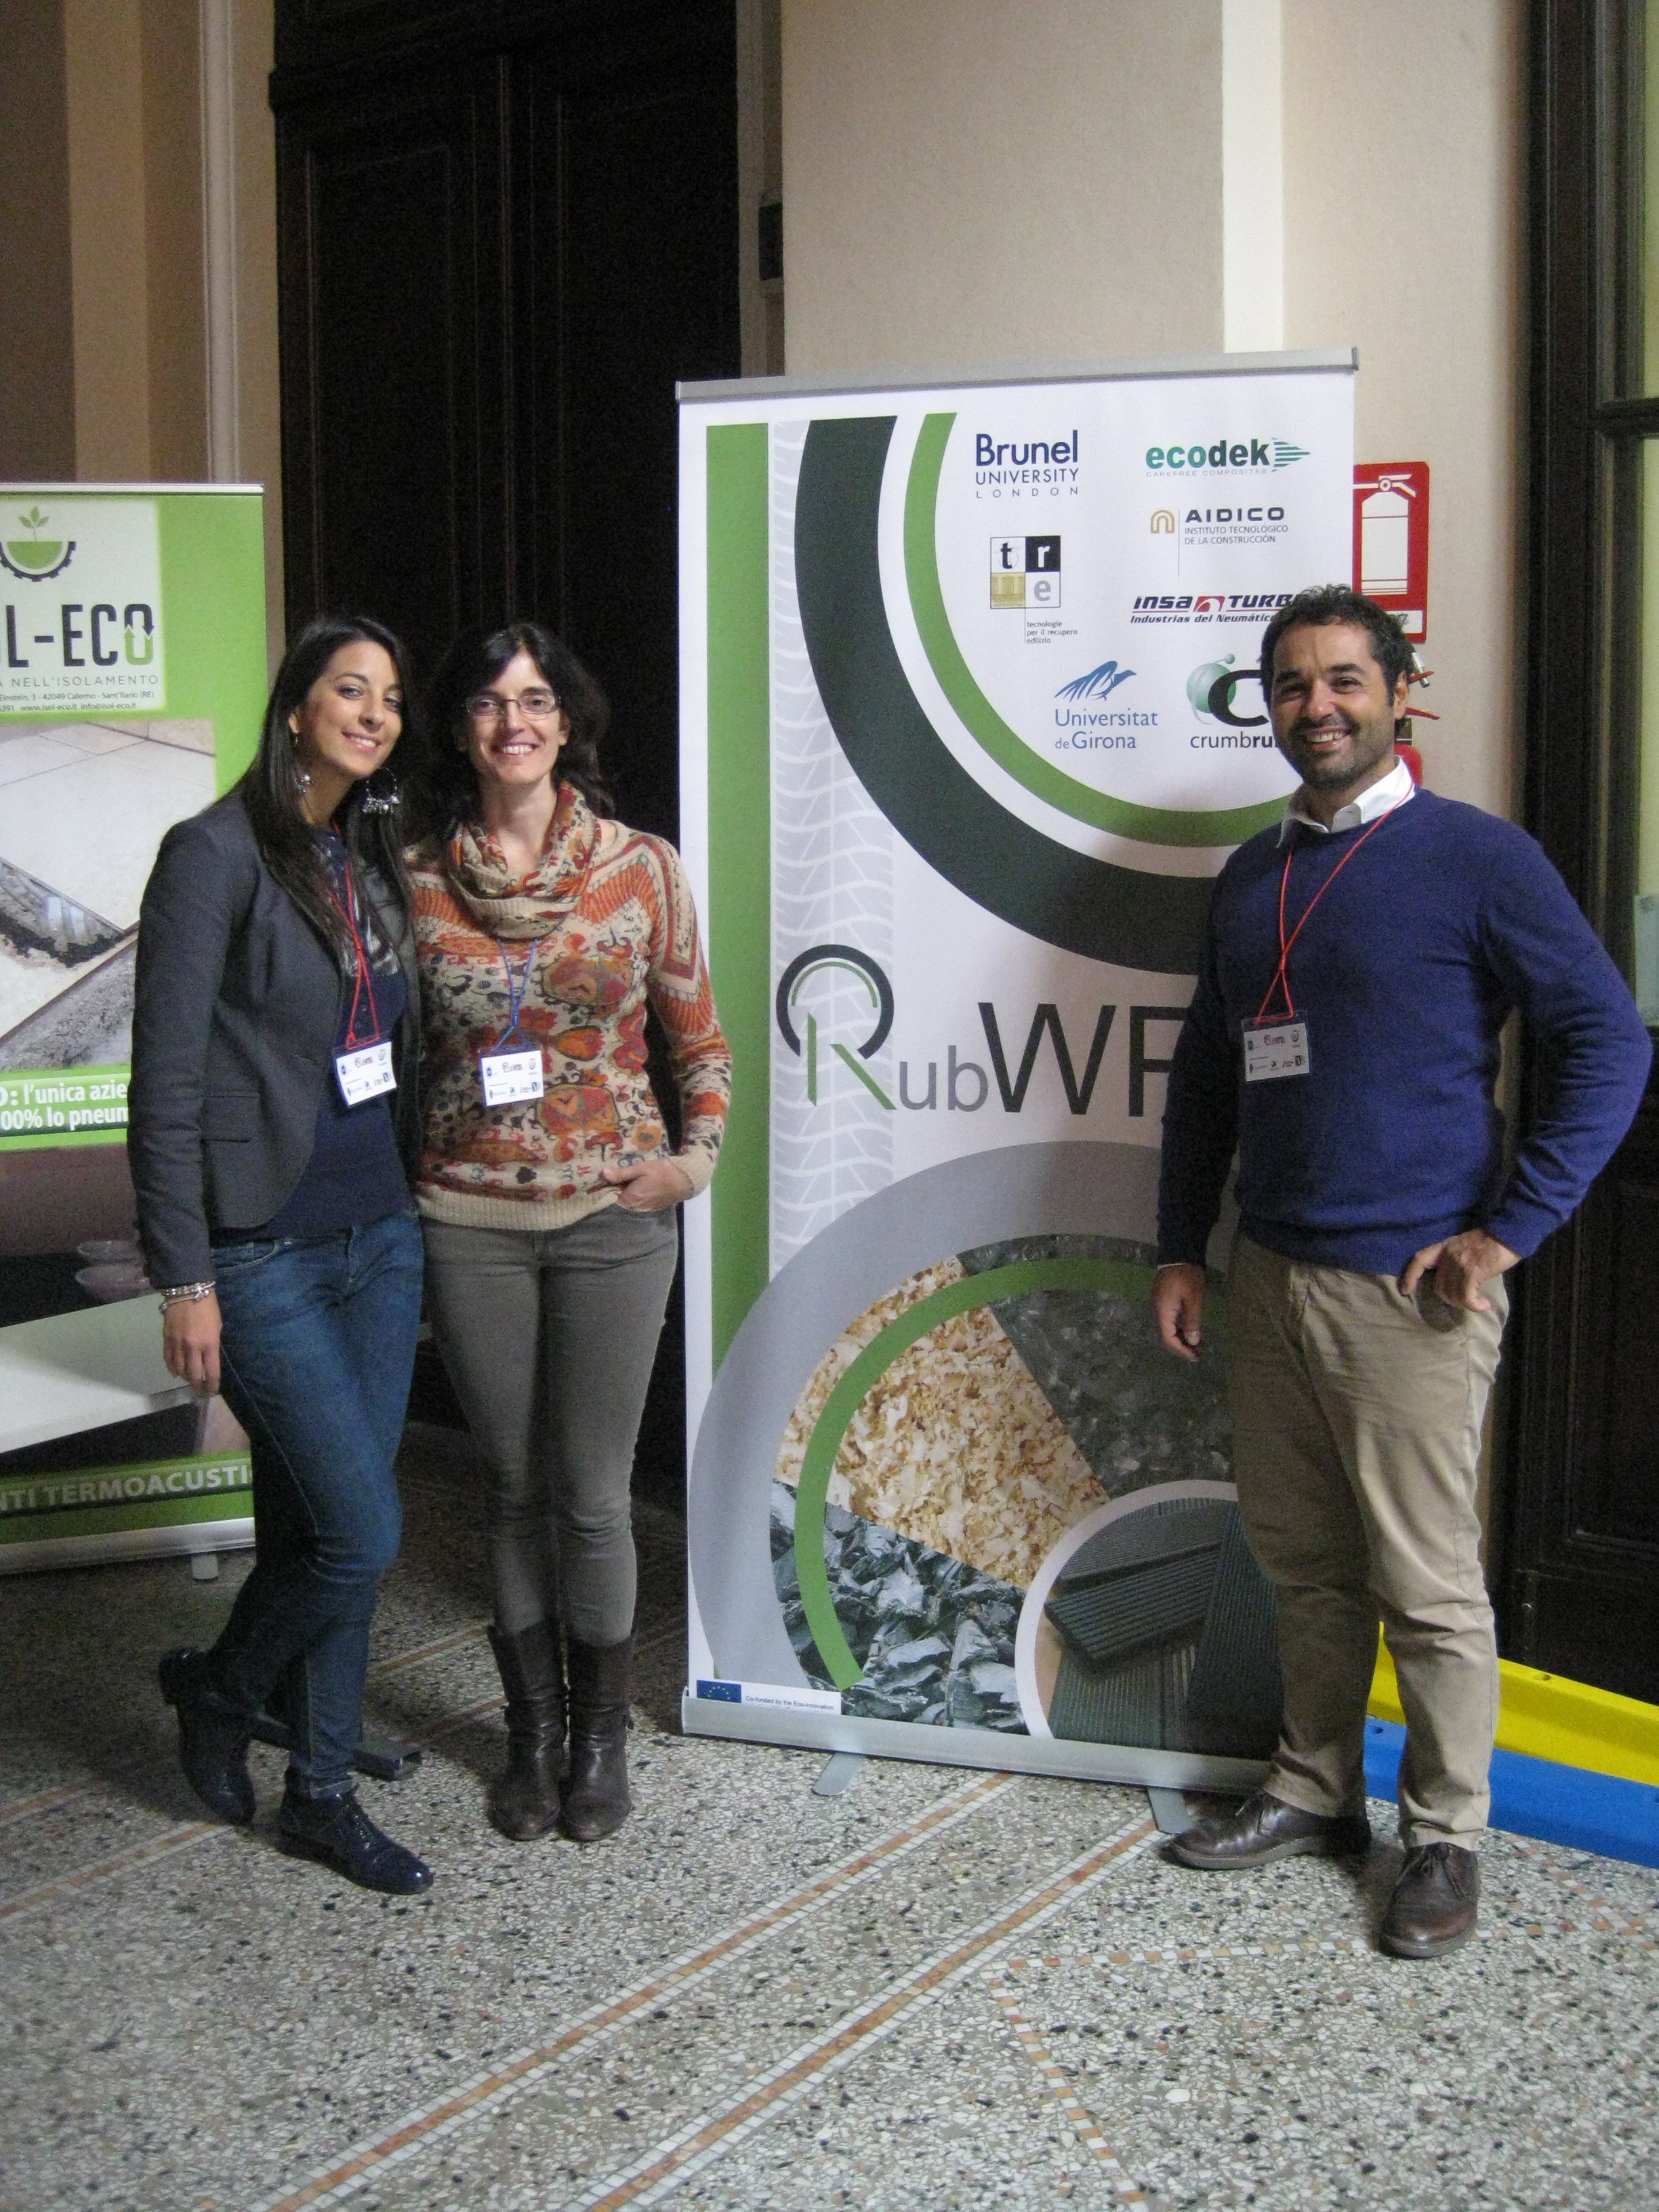 RubWPC @ International Seminar for Safer and more Sustainable City Life in Turin